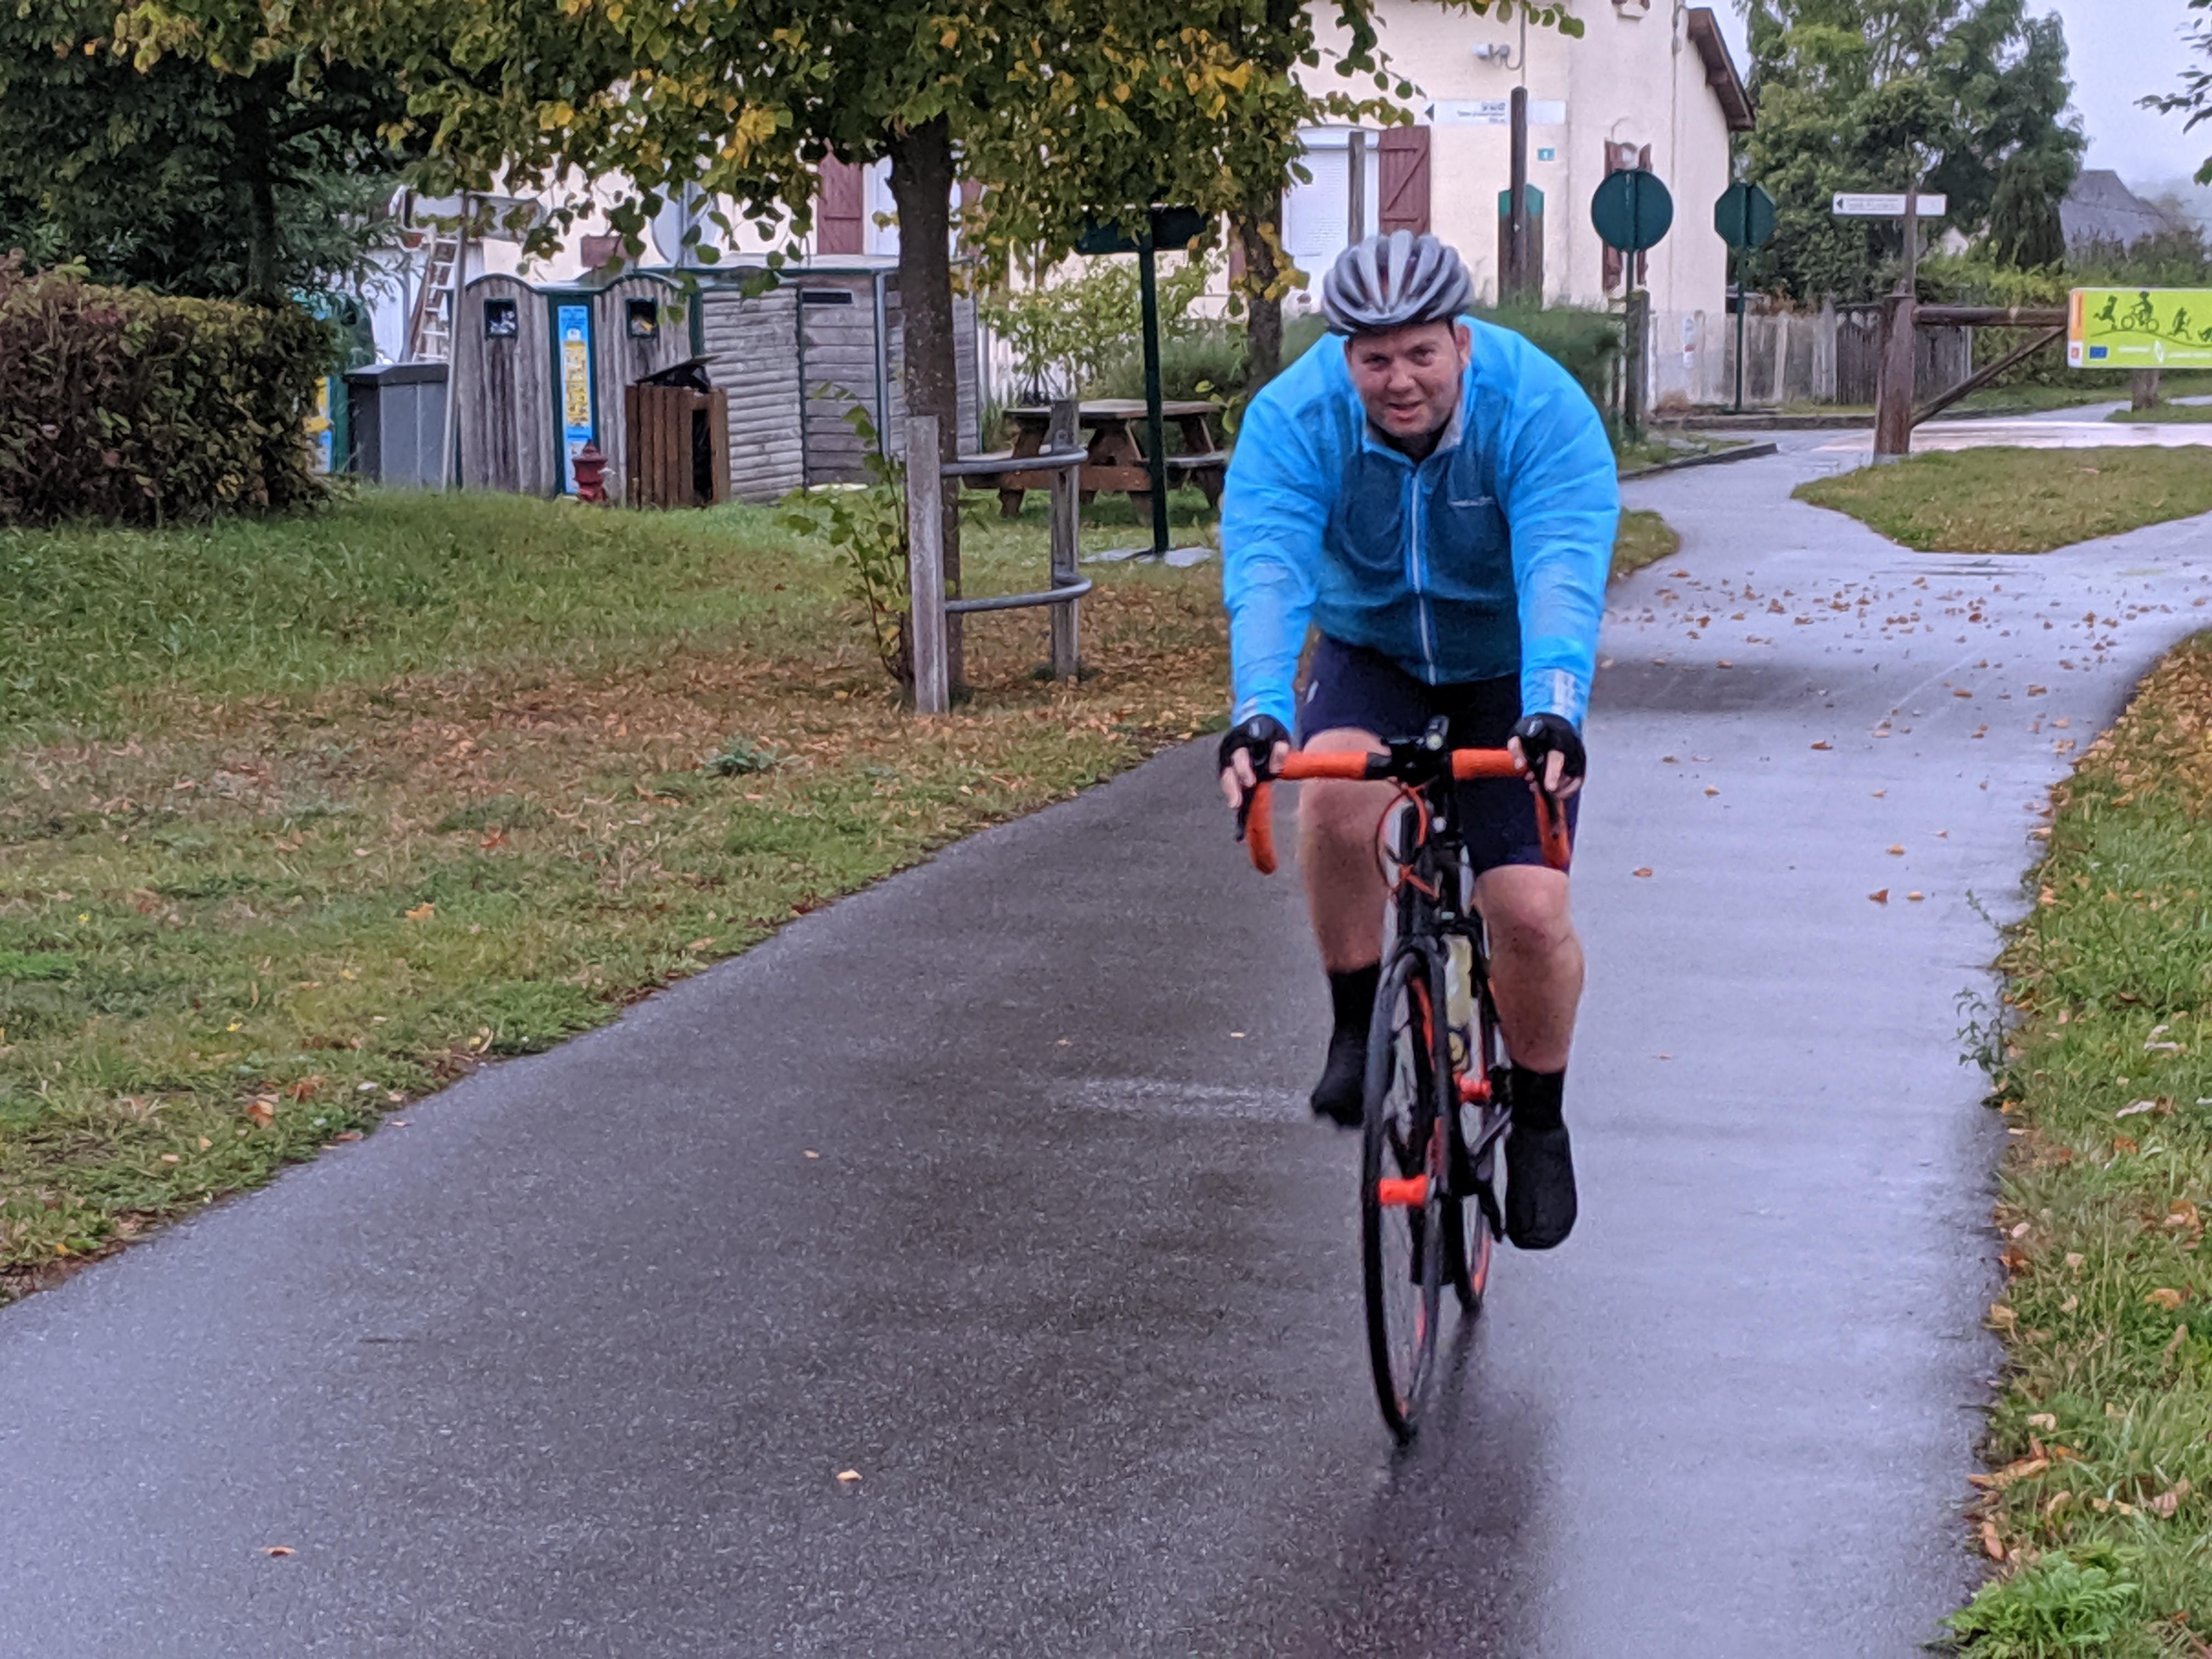 London to Paris 2 (L2P2) by Astriid fundraising photo 4